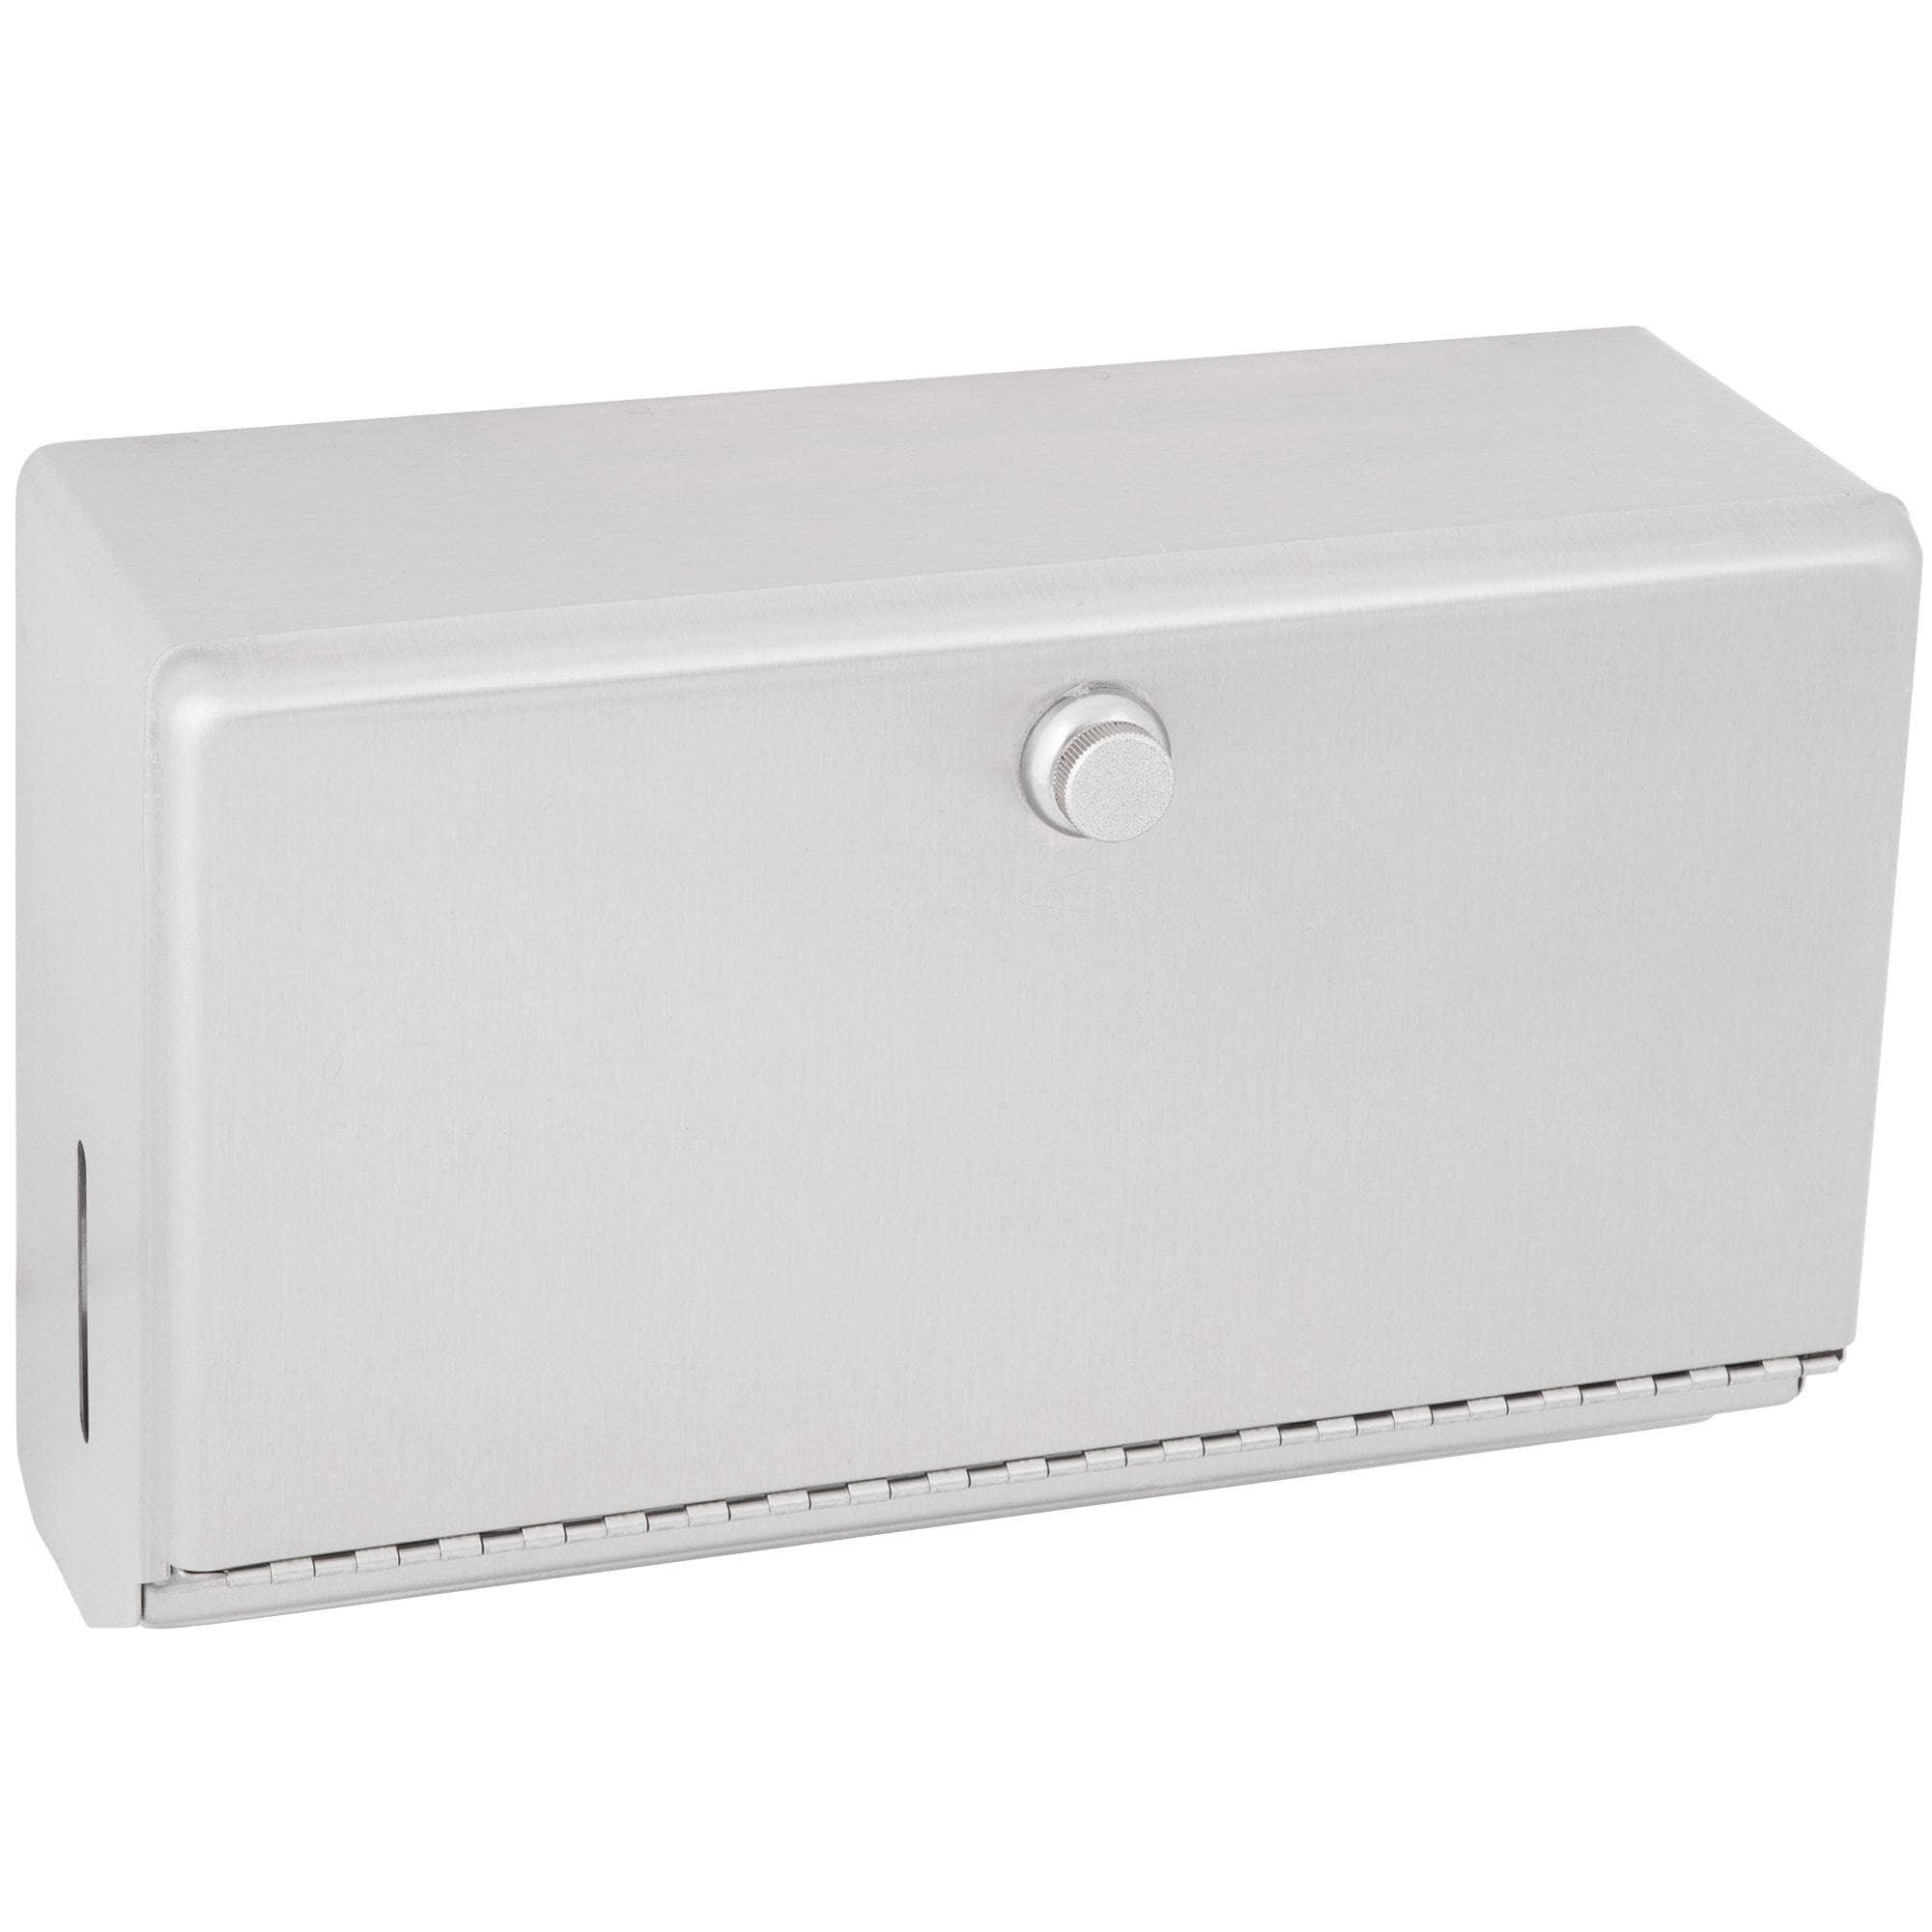 Bobrick B-2621 Commercial Paper Towel Dispenser, Surface-Mounted, Stainless Steel - [product_type] - Bobrick